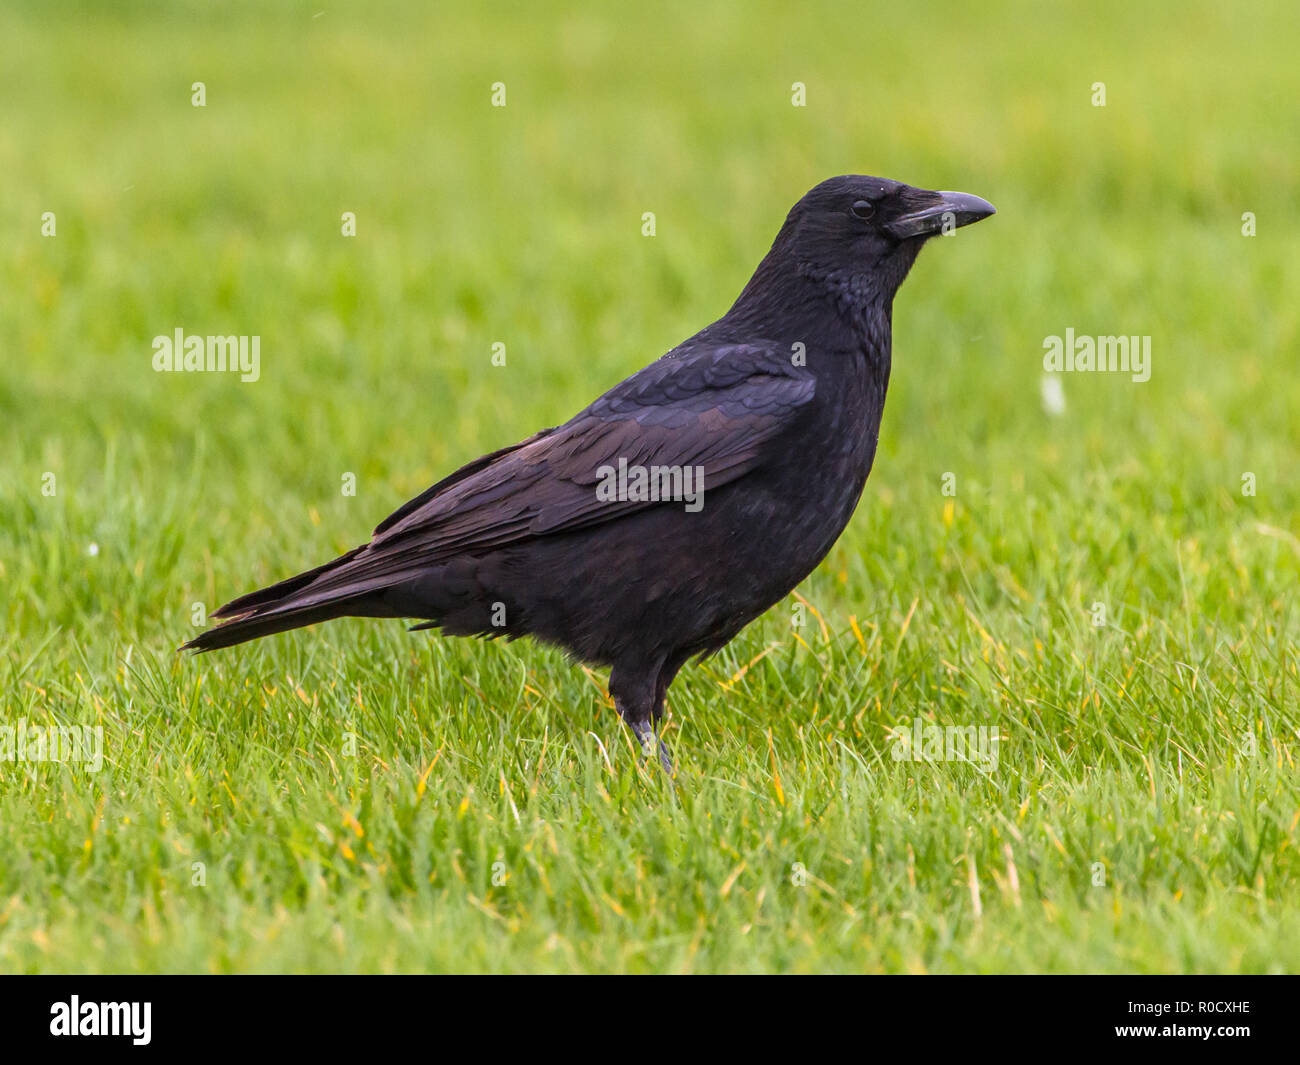 Silhouette Black Crow (Corvus corone) on green field looking forward - Stock Image